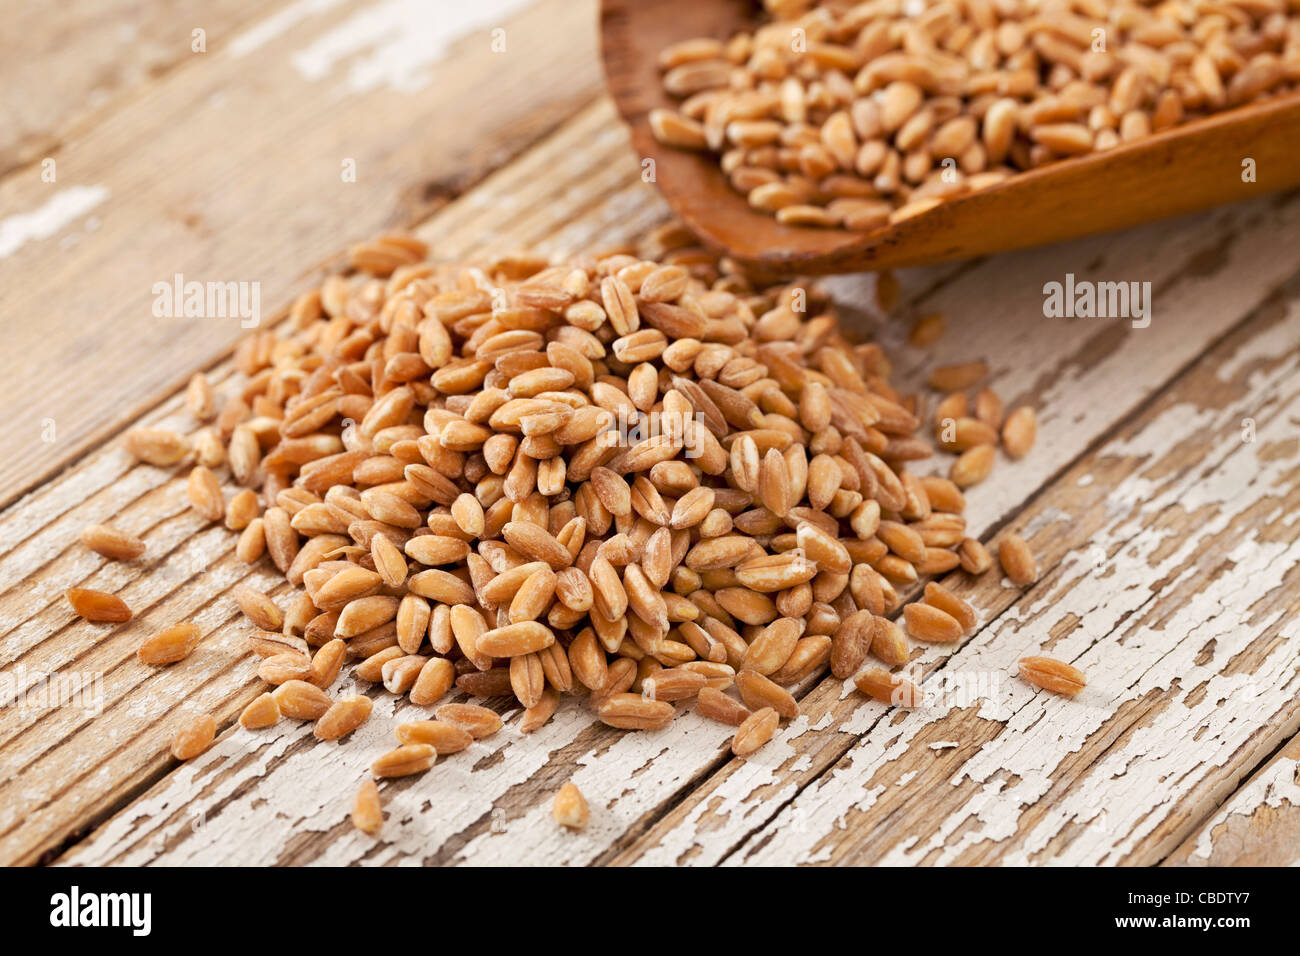 scoop of farro grain (ancient wheat) on rustic wooden scoop against grunge white painted wood surface - Stock Image